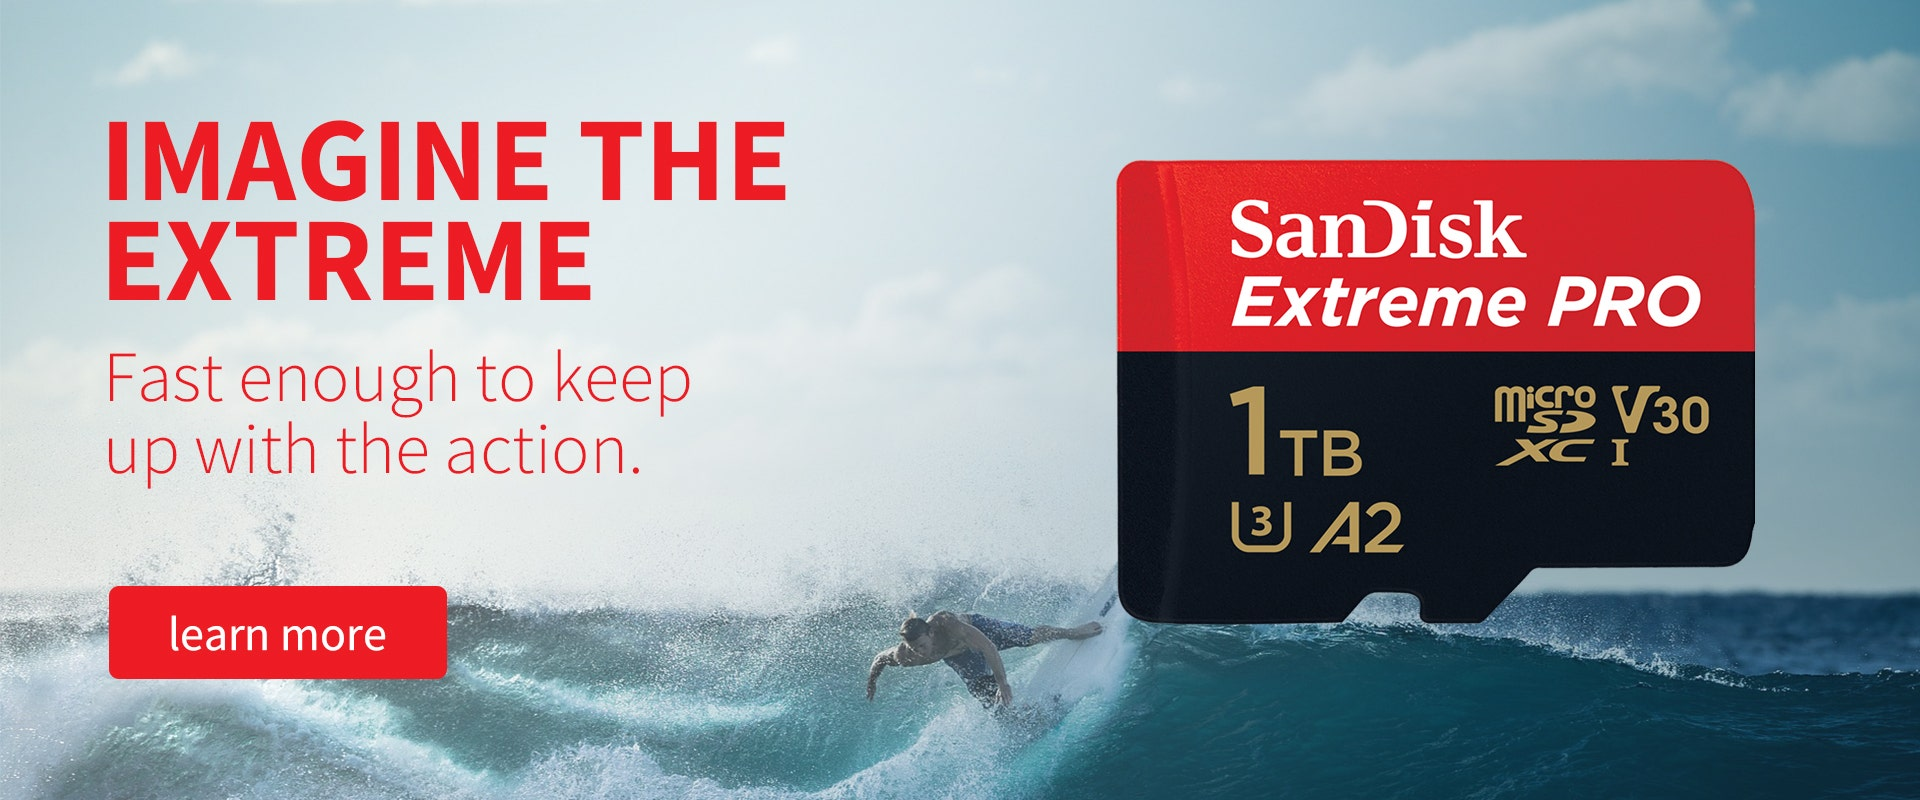 SanDisk providing the extreme solutions to your problems.